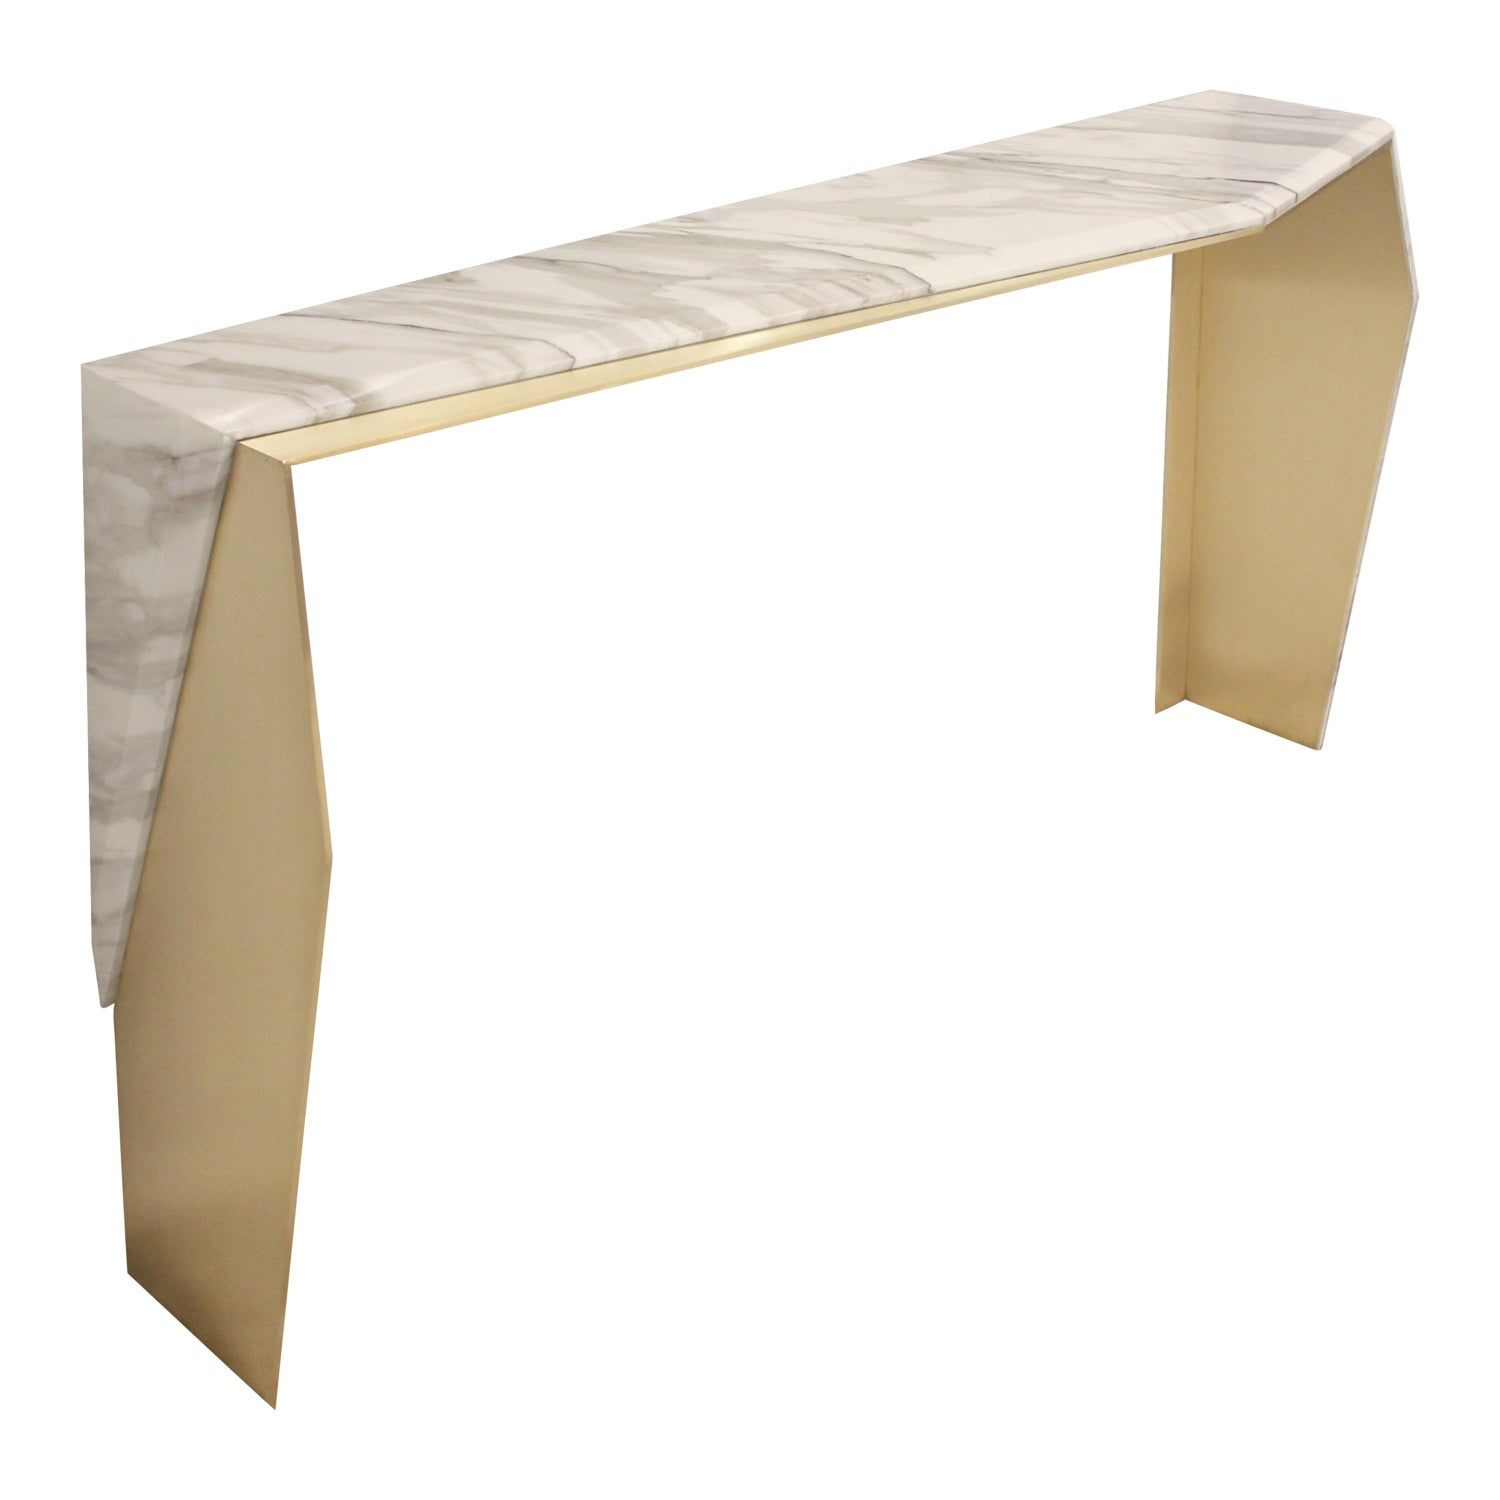 Chevron Brass And Calacatta Gold Marble Console Table In 2020 Marble Console Table Calacatta Gold Marble Brass Console Table